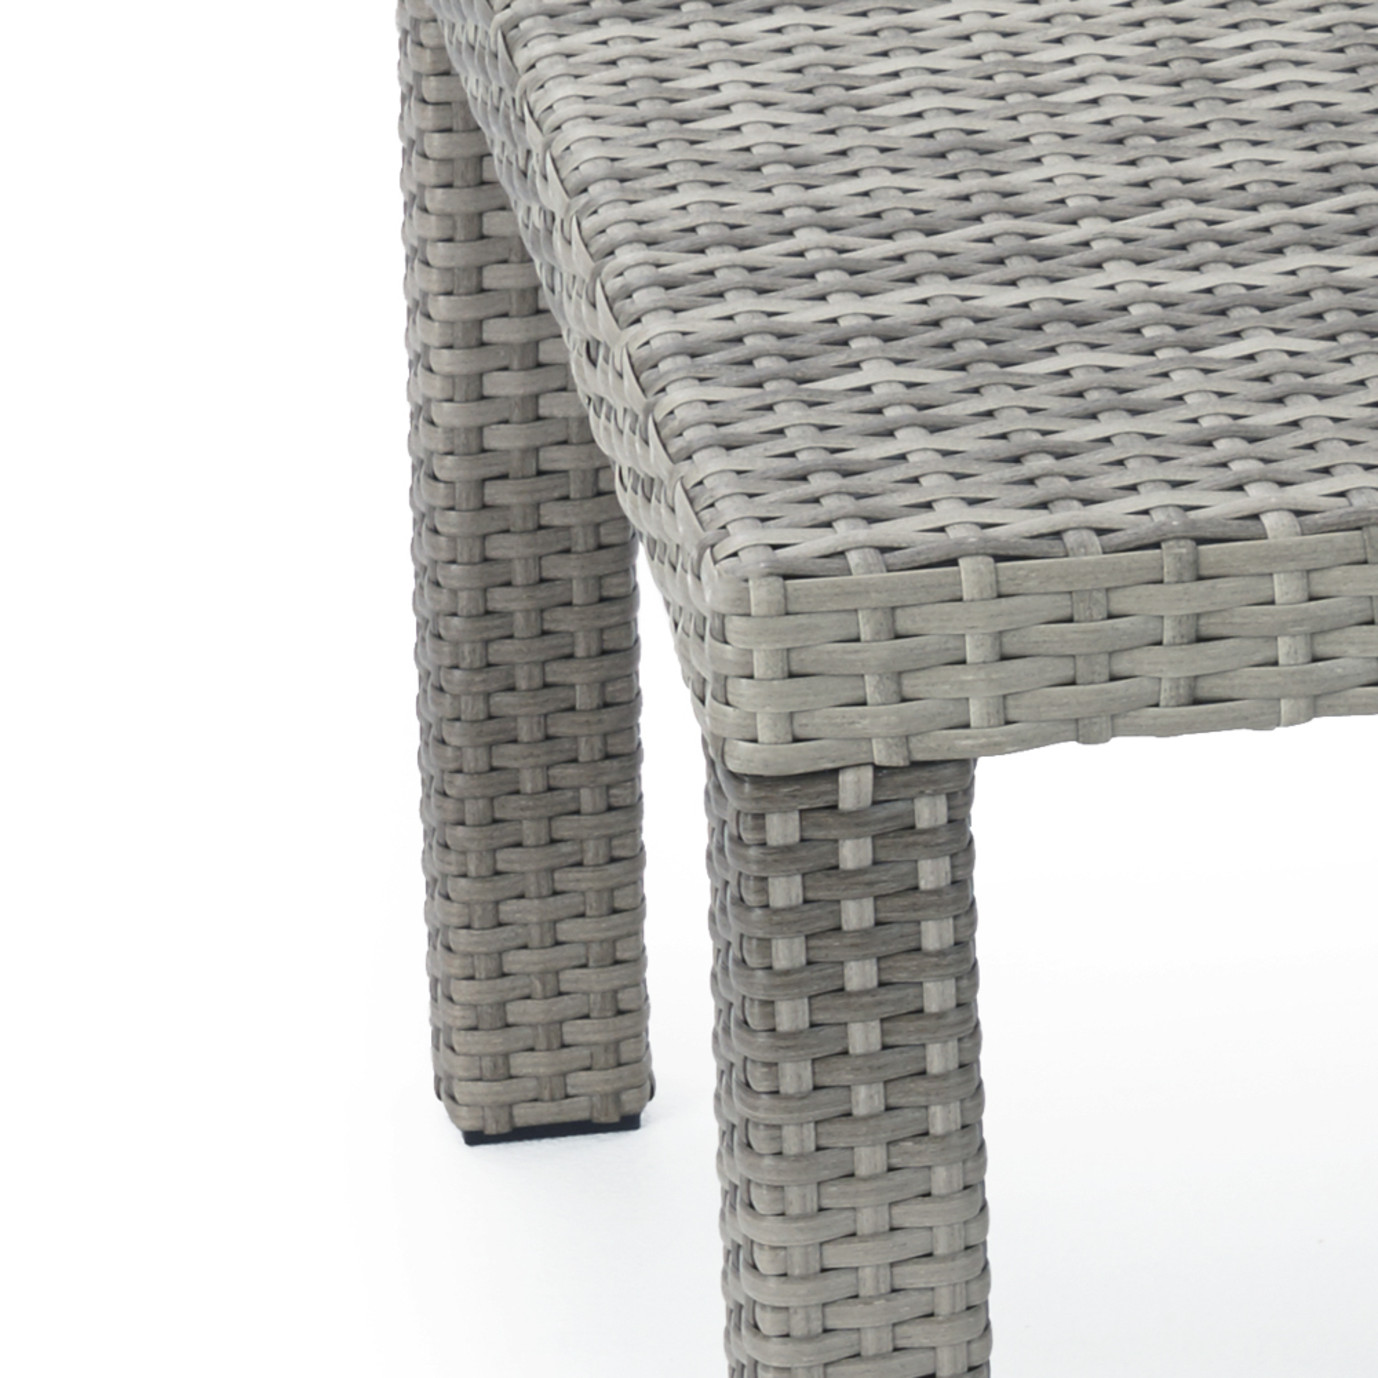 Cannes™ Club Chairs & Side Table - Wisteria Lavender